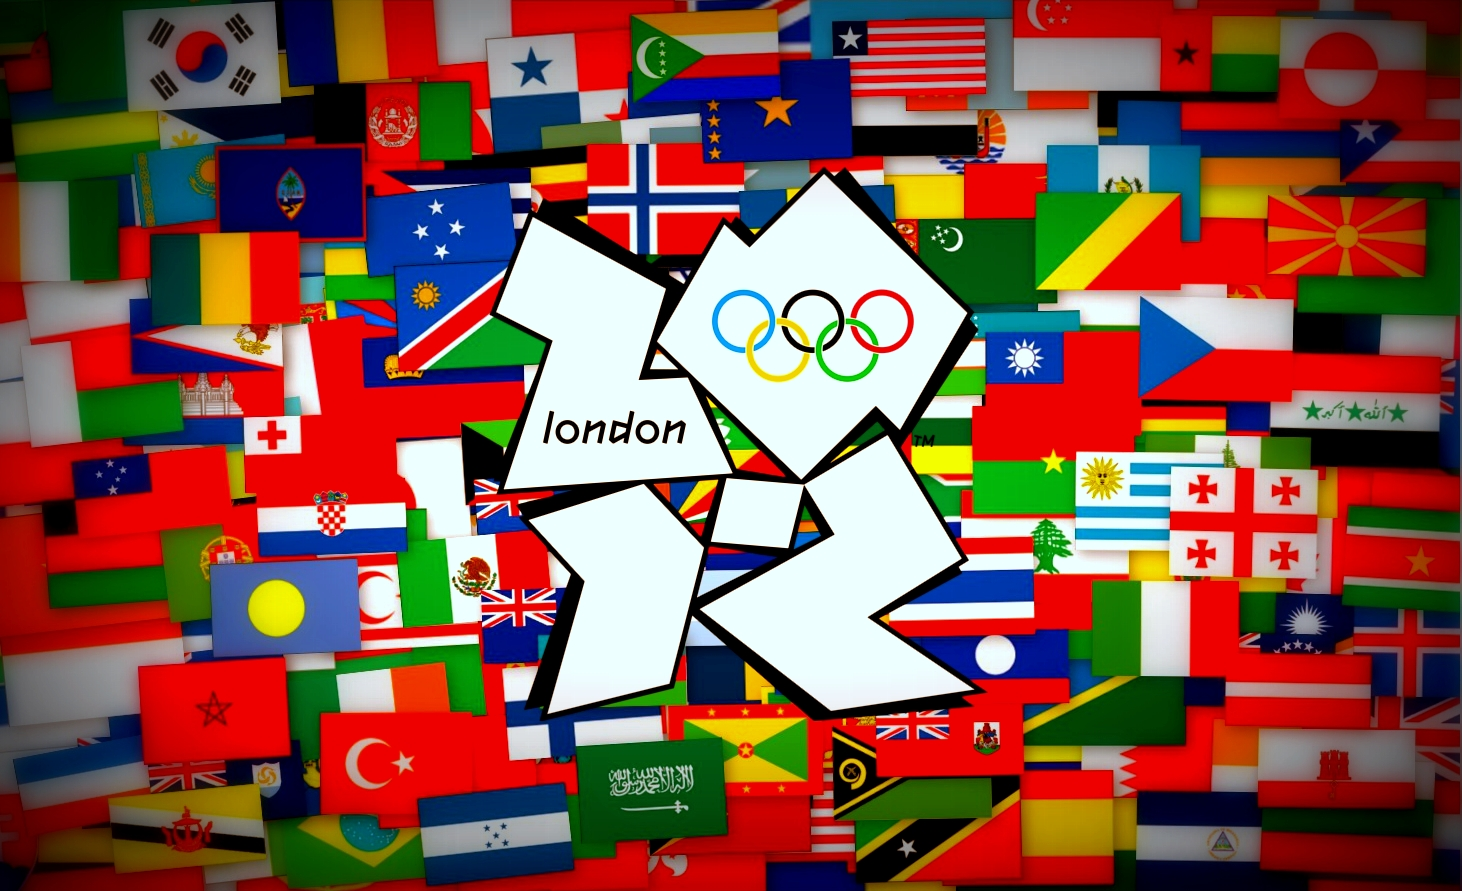 London Logo Wallpaper London Olympics 2012 Logo